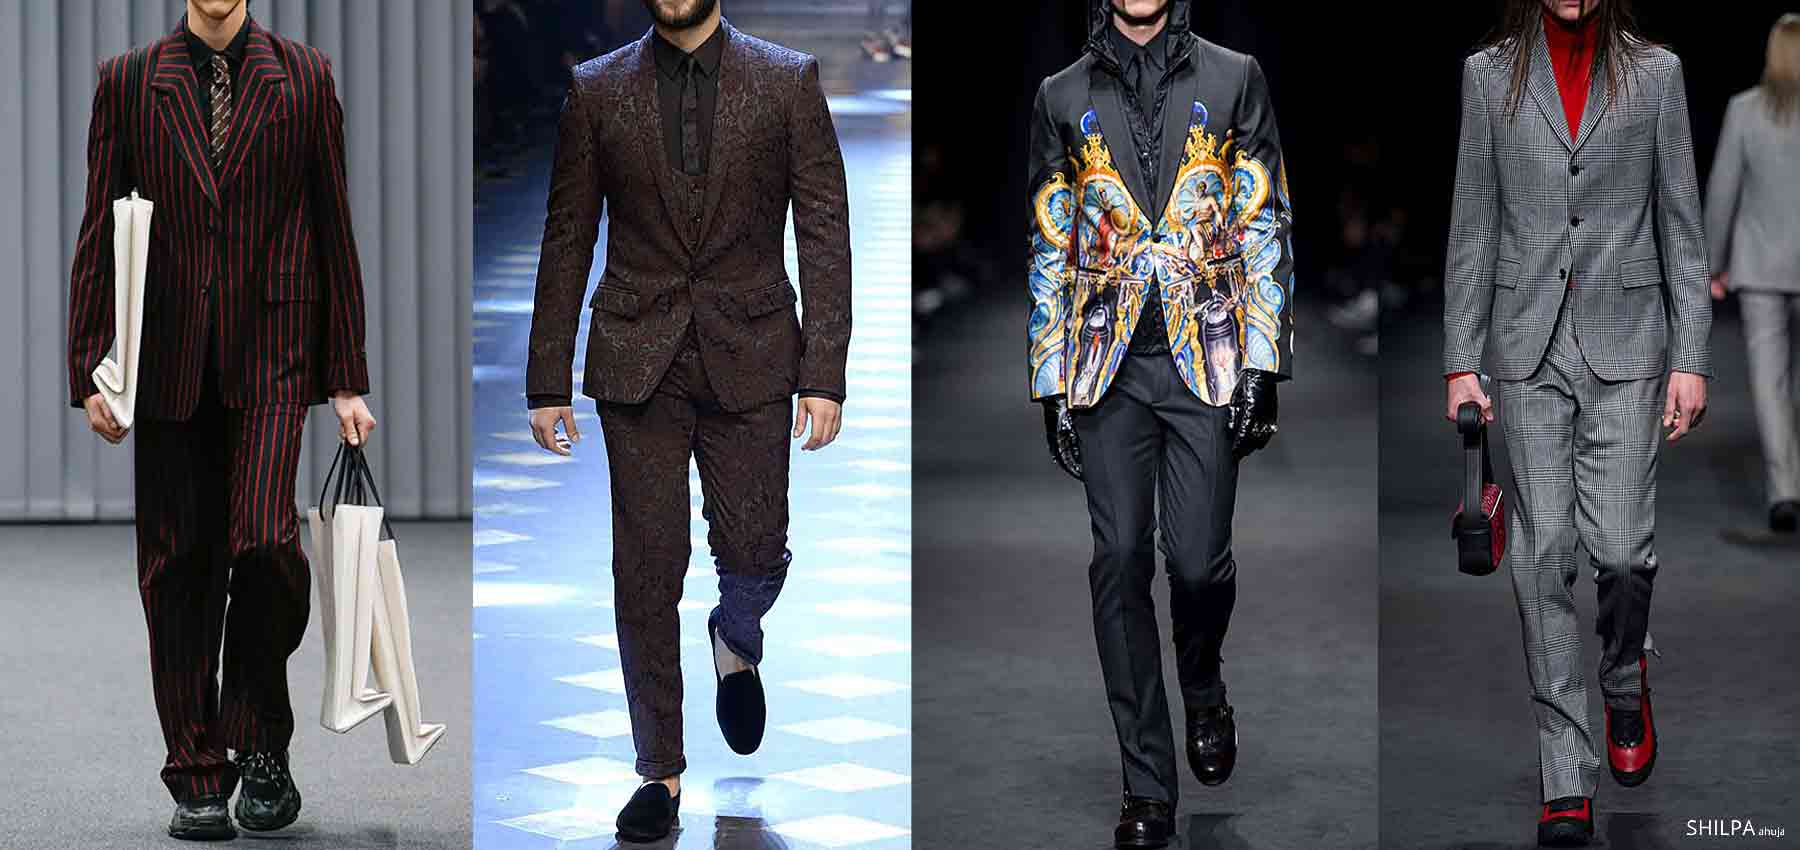 mens-suit-trends-stripes-art-prints-embroidery-suits-brocade-patterns